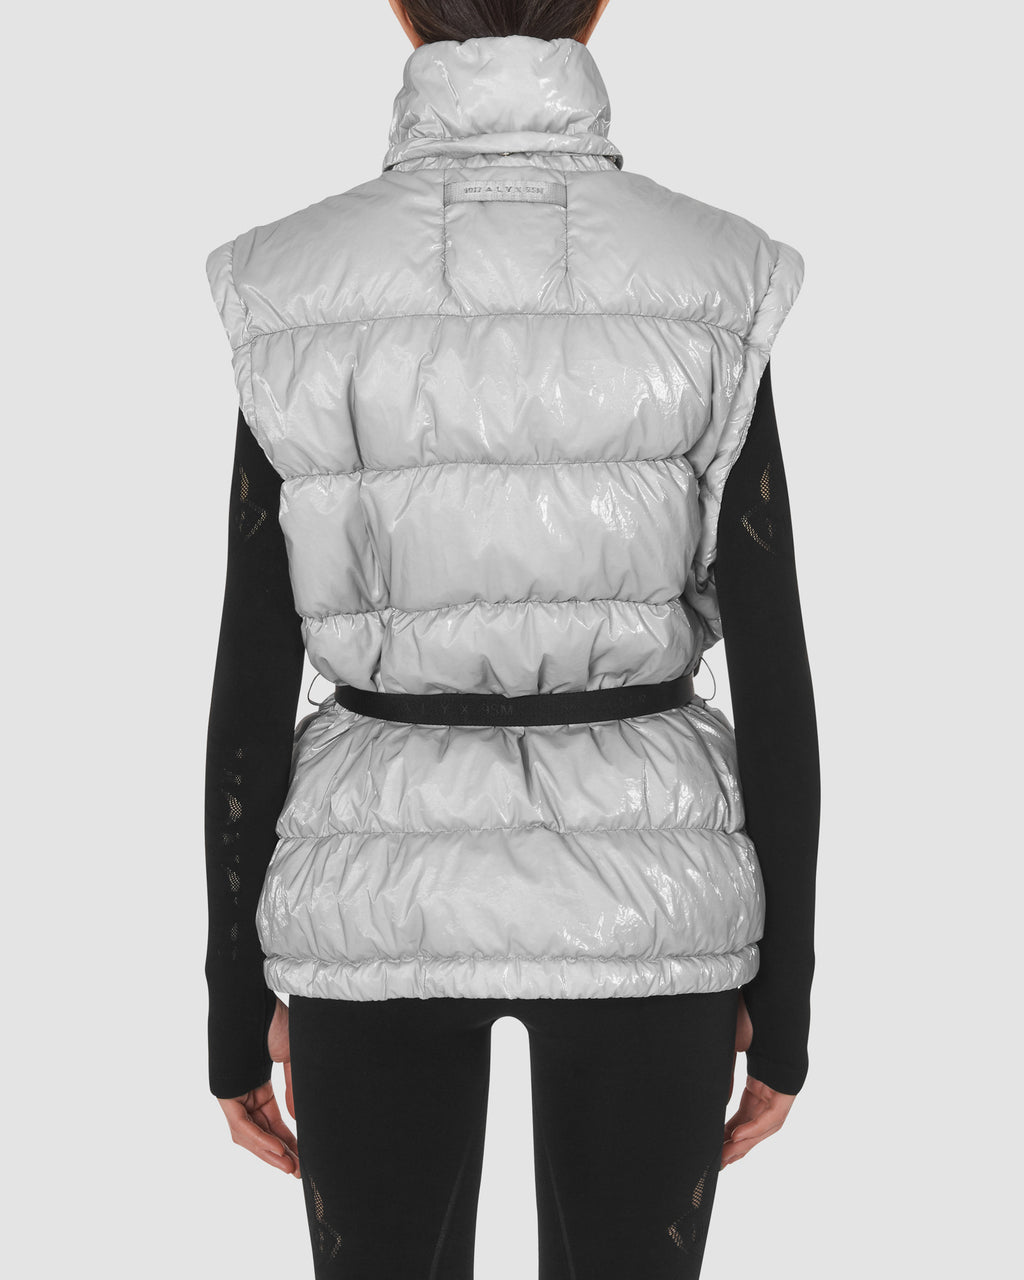 1017 ALYX 9SM | MONCLER PHOBOS JACKET | Outerwear | Google Shopping, Man, Moncler, OUTERWEAR, S20, WASHED GREY, Woman